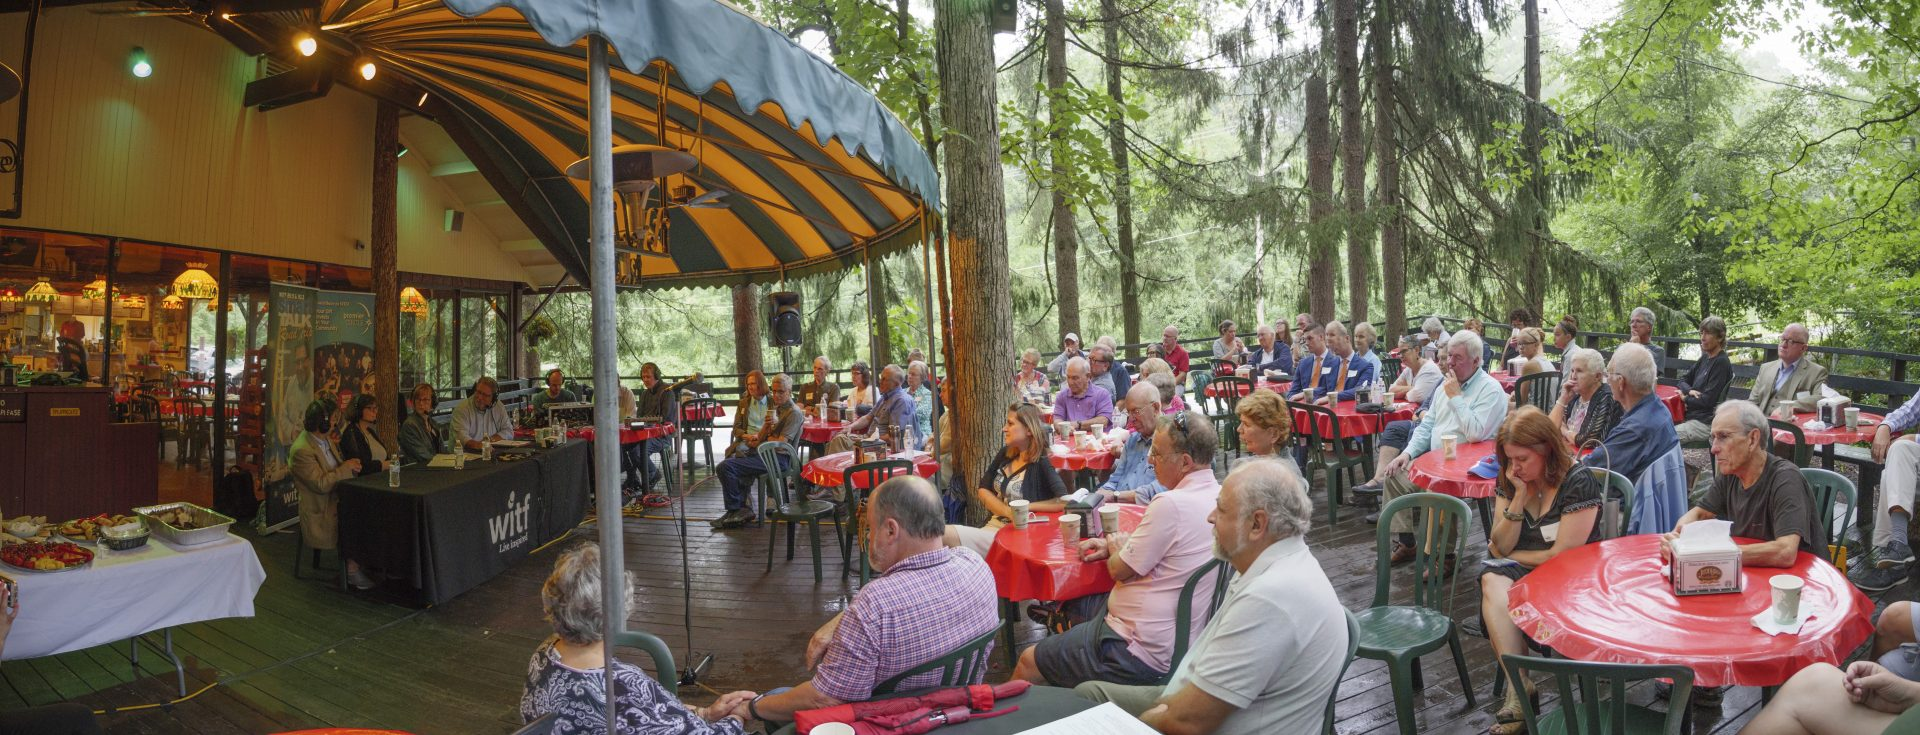 A remote Smart Talk broadcast from the Jigger Shop in Mount Gretna on Aug. 15, 2017.